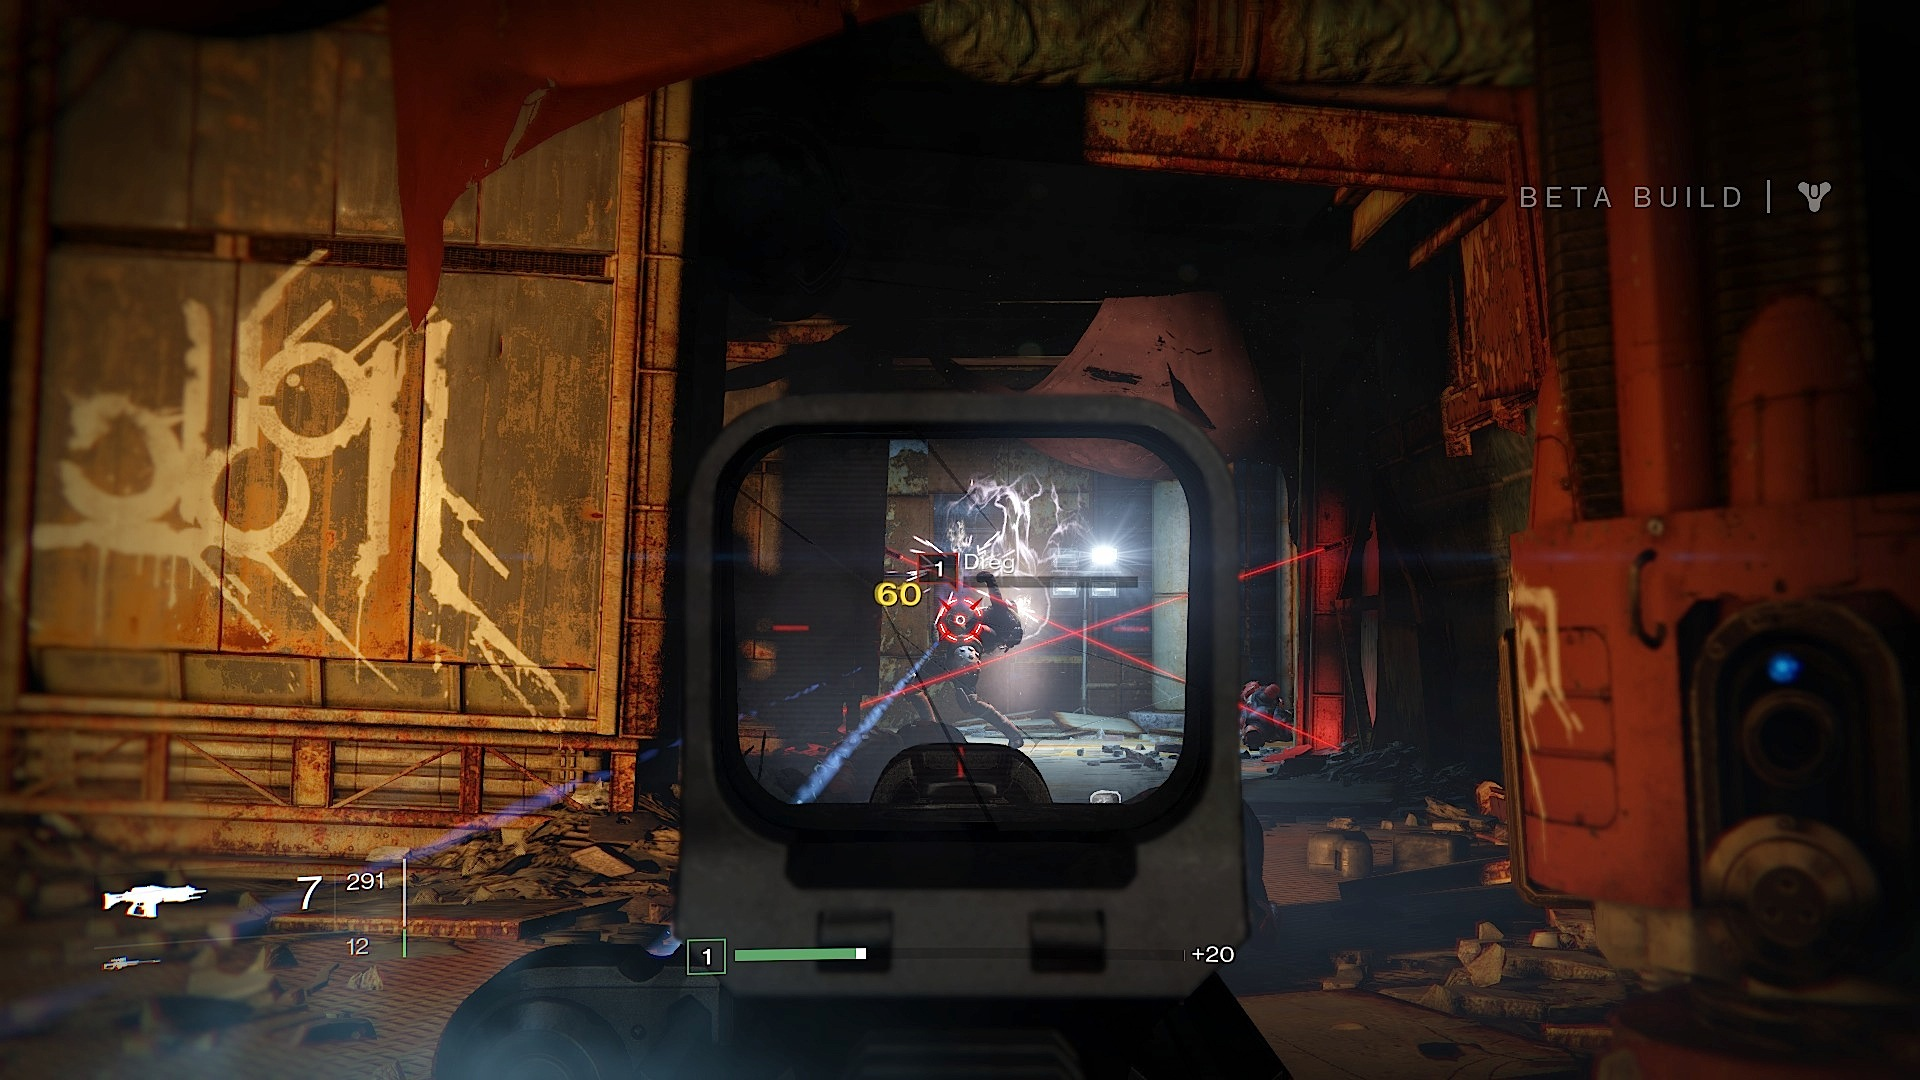 Destiny beta firefights are more fun with friends.